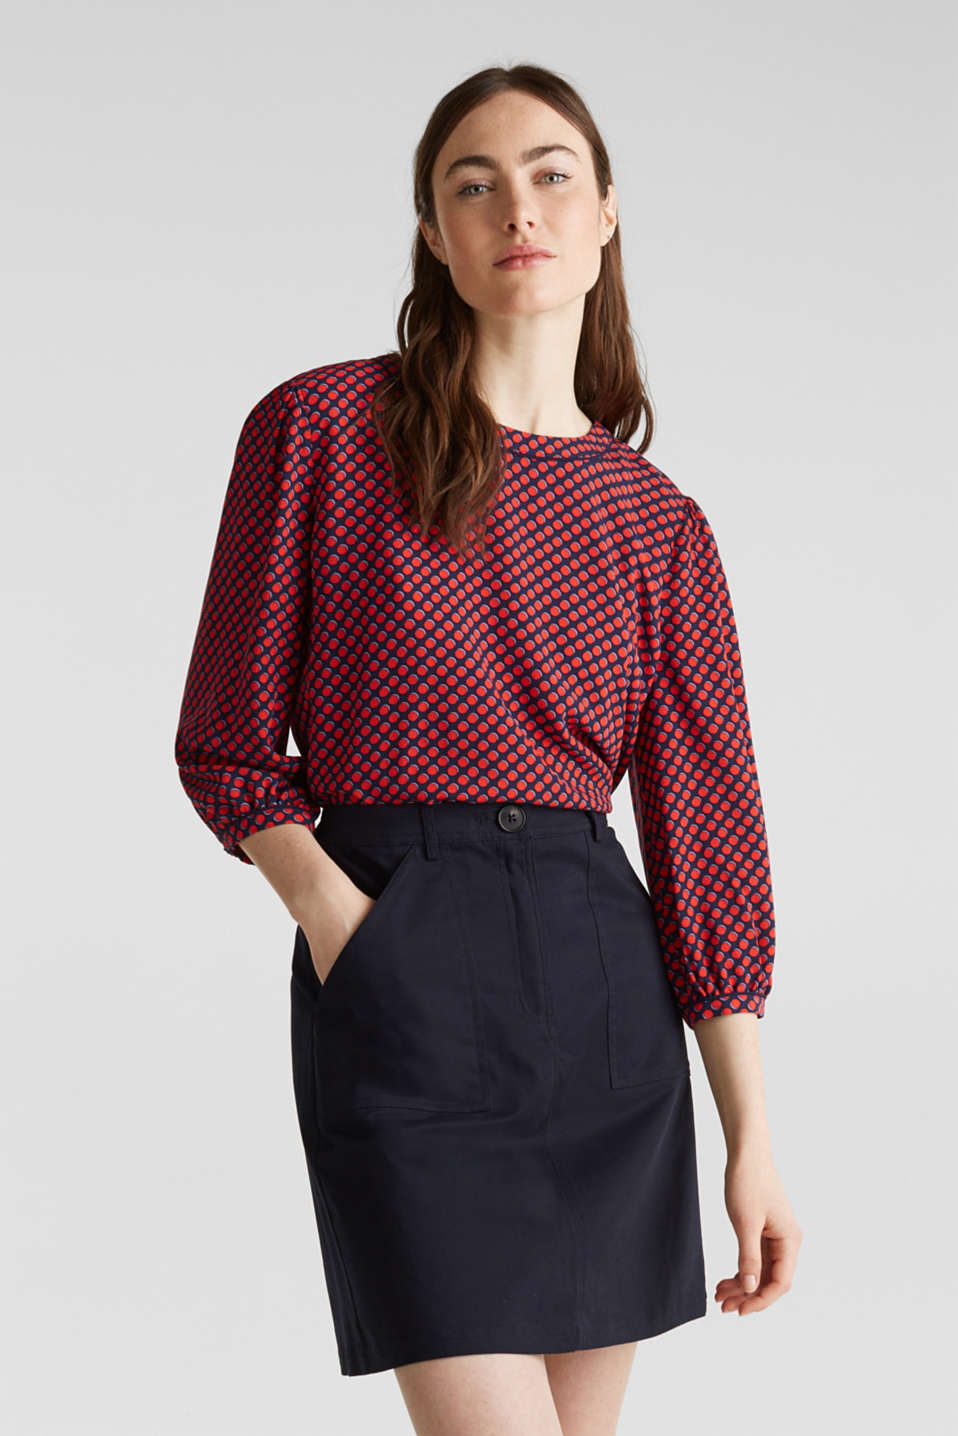 Esprit - Blouse with 3/4-length sleeves